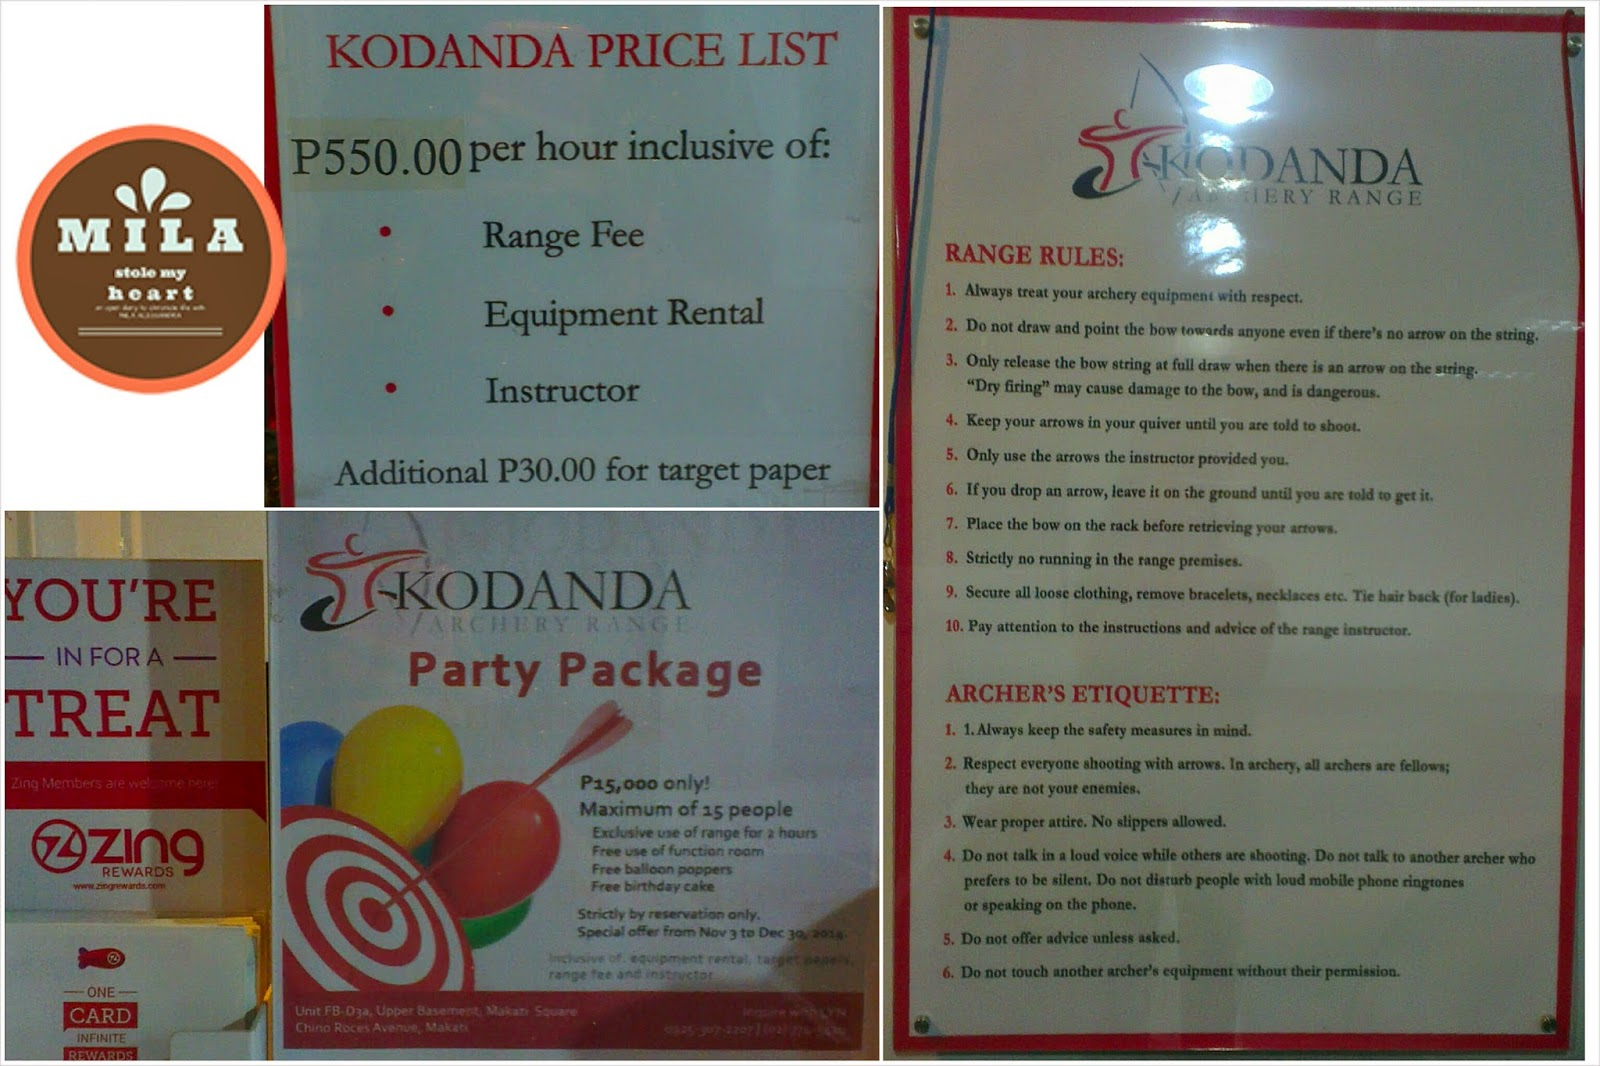 Kodanda Archery Range Range Rule Price List